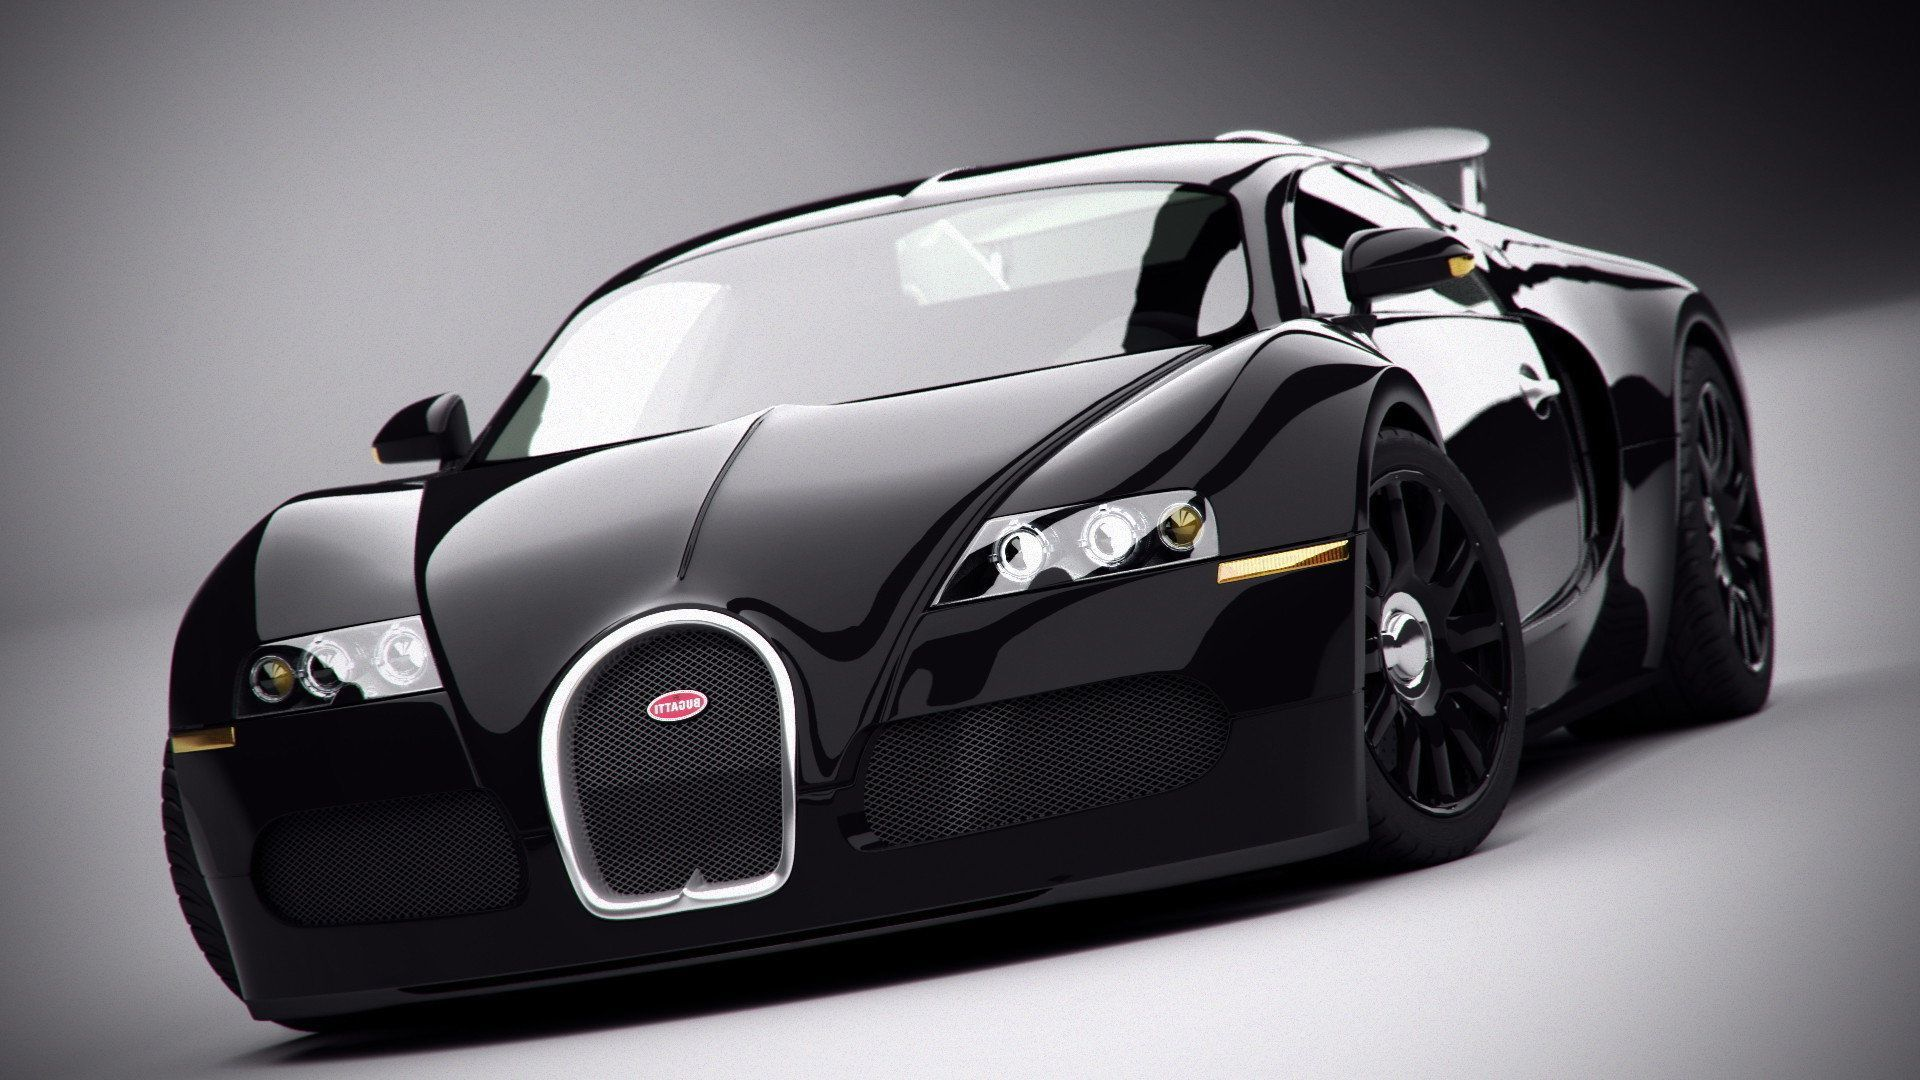 3dc38784717bb400274d8d382df85cd5 Surprising Bugatti Veyron Price In Bahrain Cars Trend